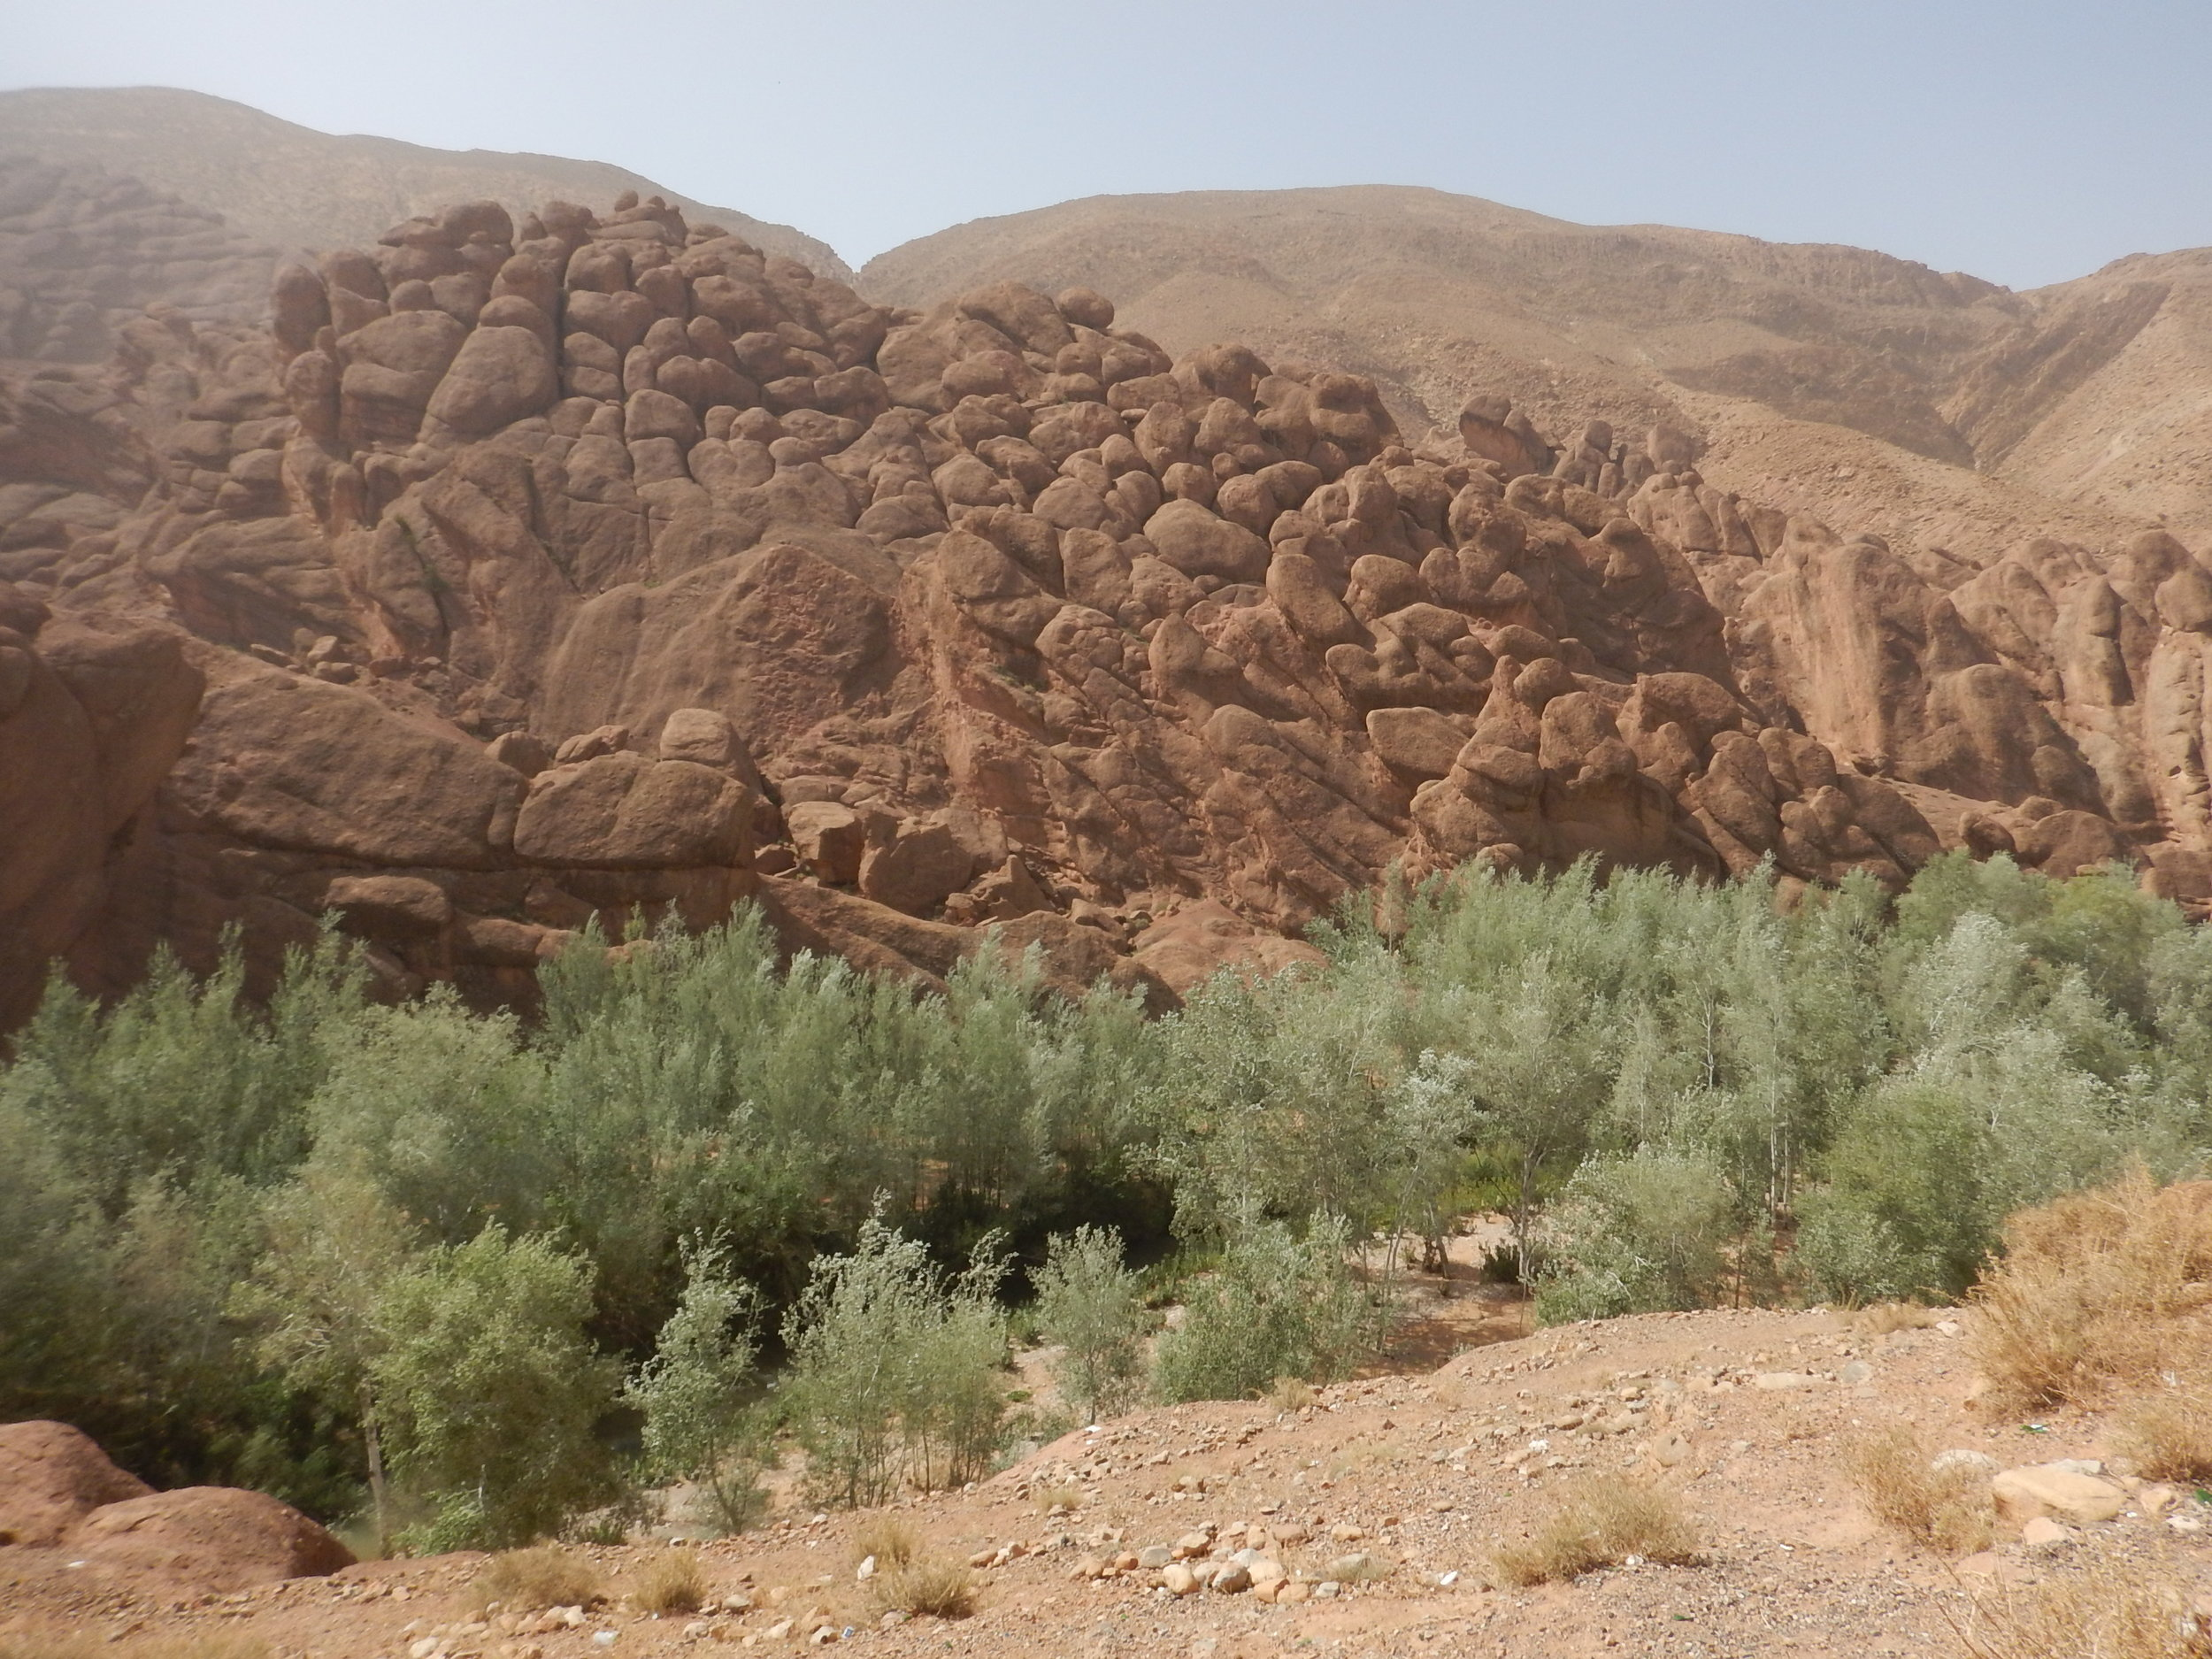 Dades Gorge and its weather rocks